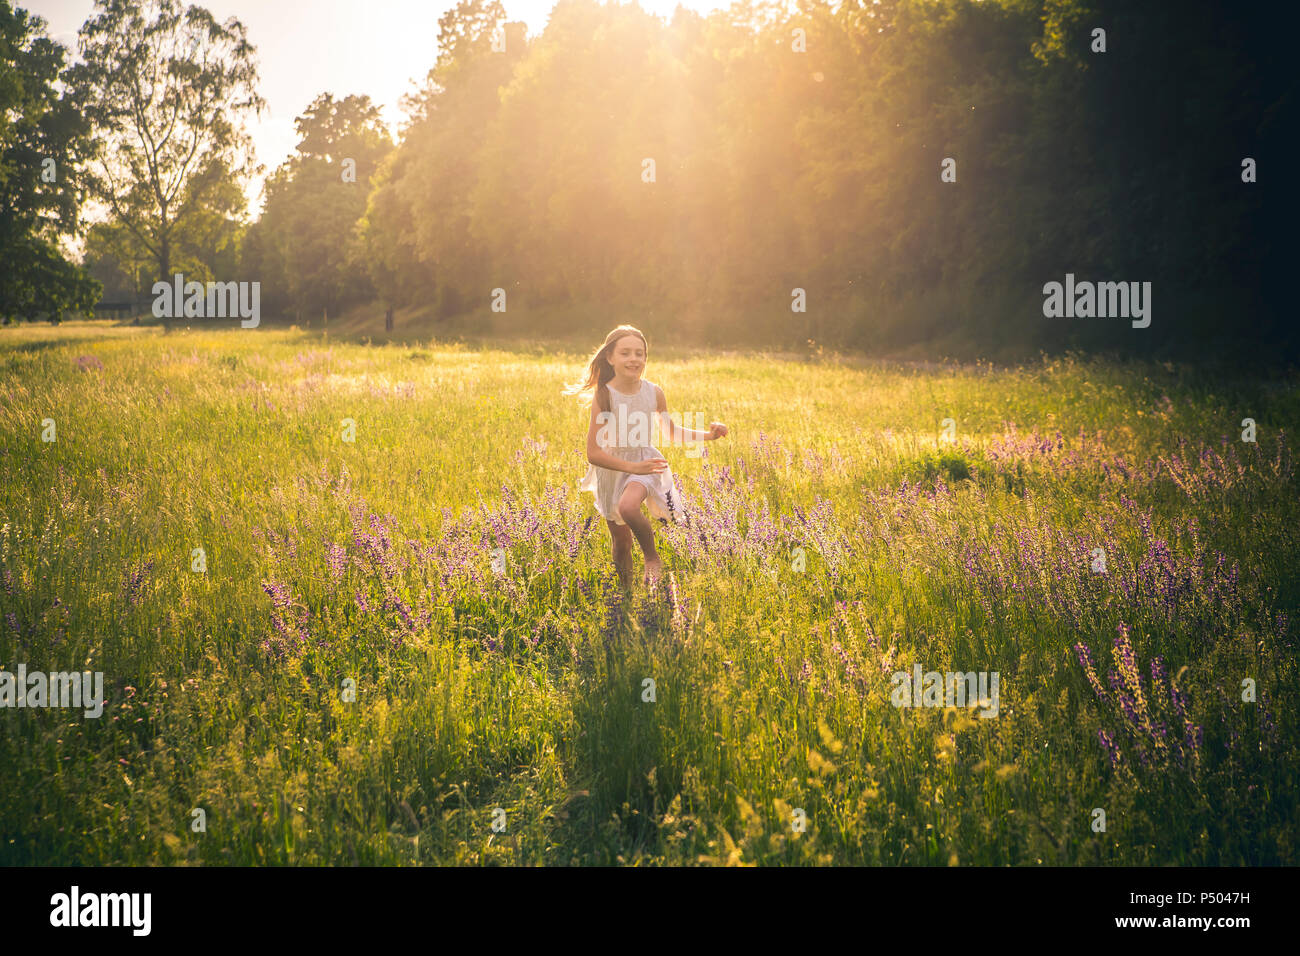 Smiling girl running on flower meadow au crépuscule du soir Photo Stock